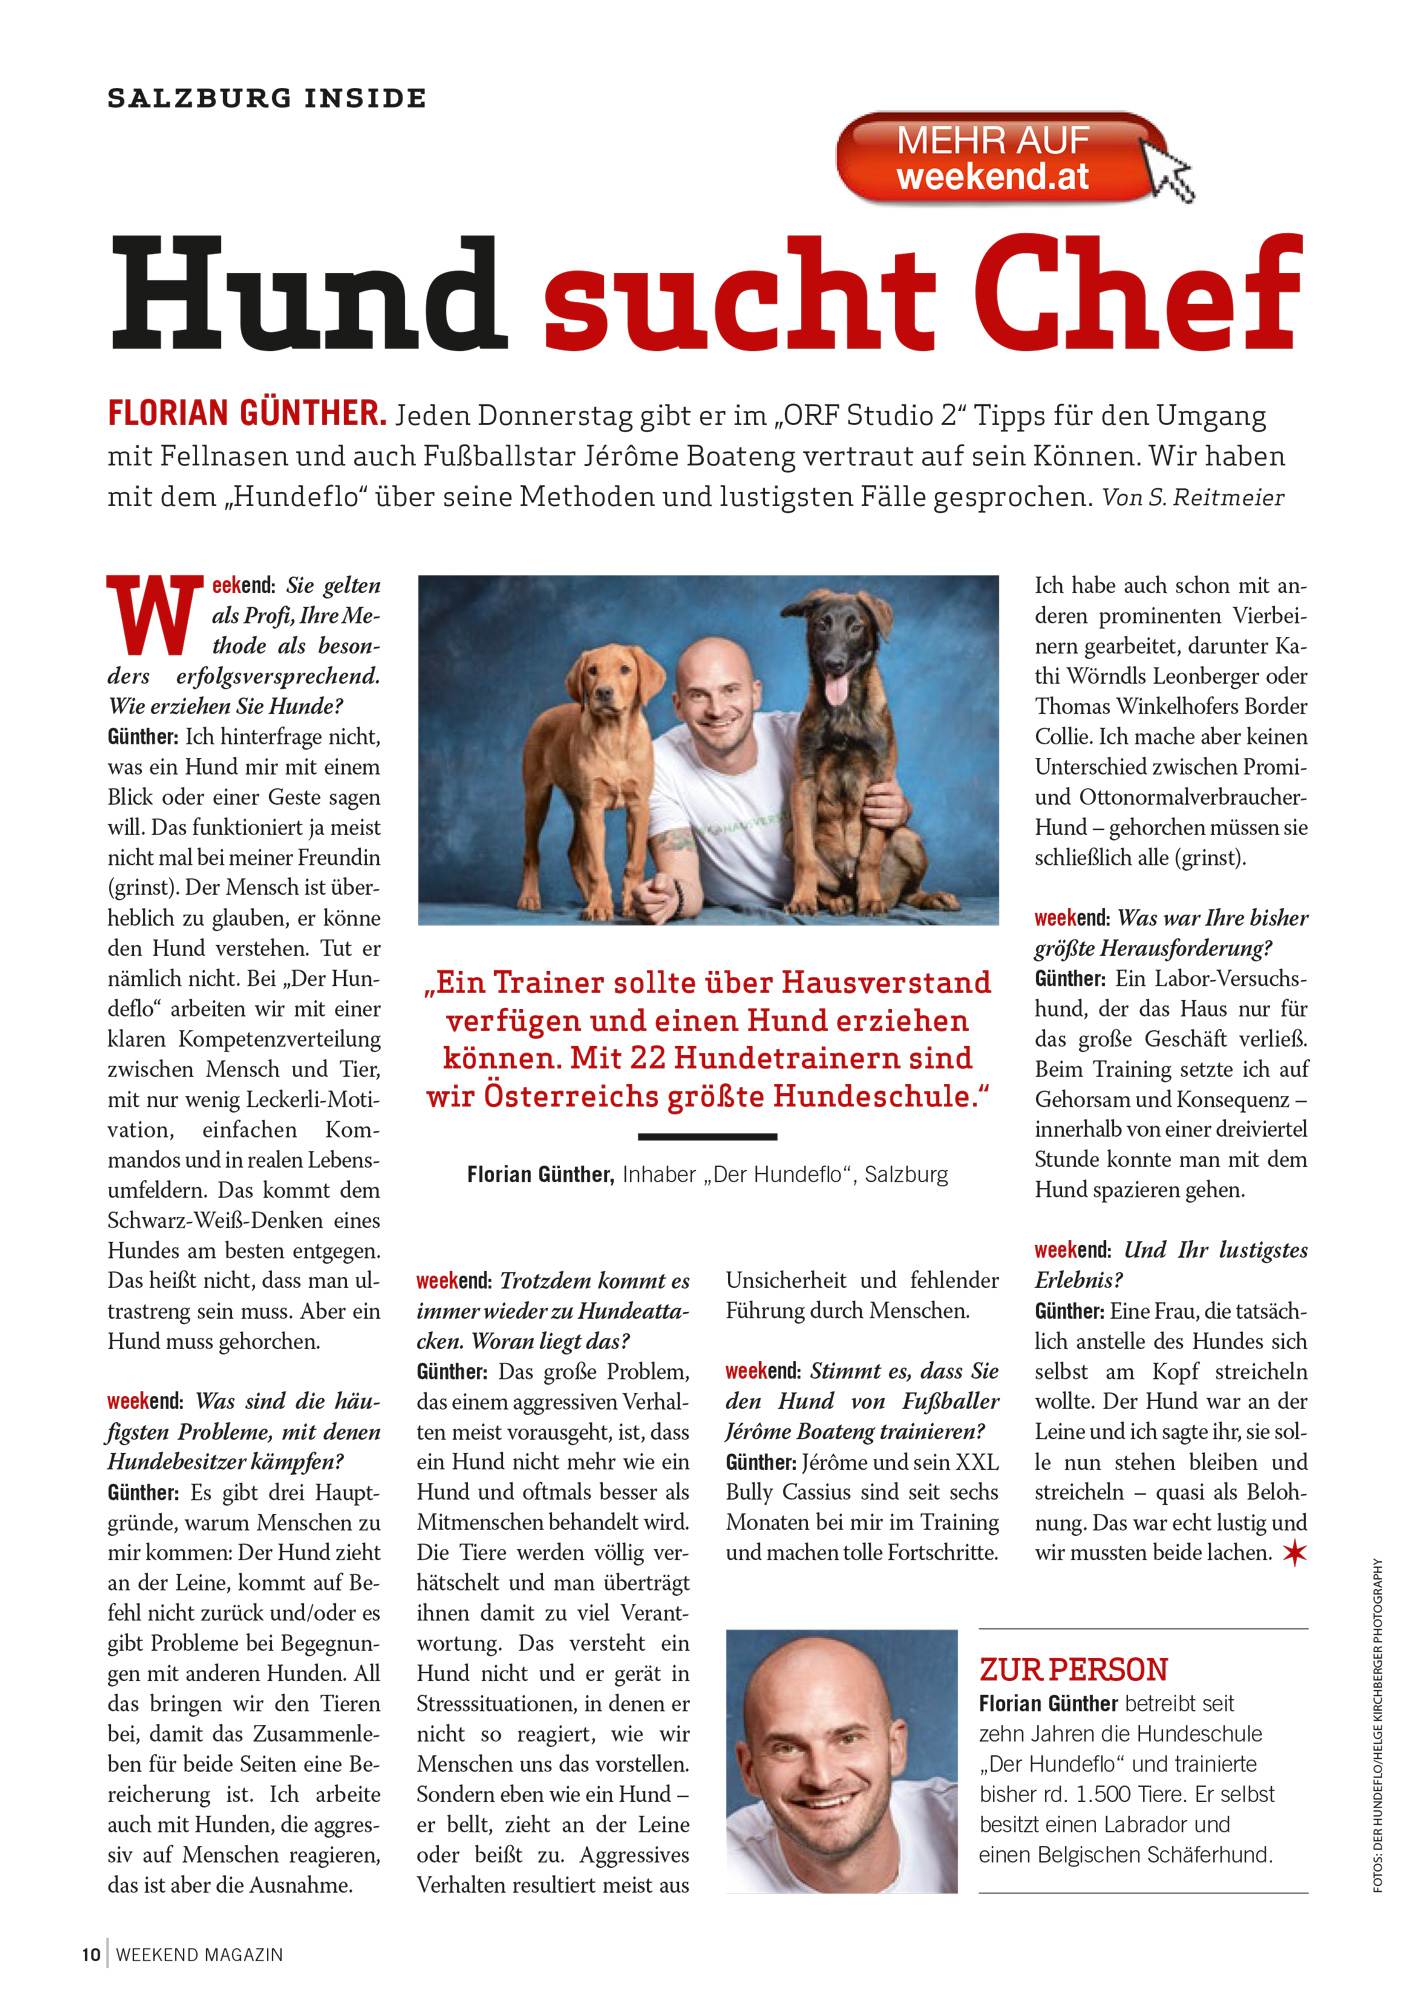 Der Hundeflo, Weekend Magazin, 31. Mai 2019